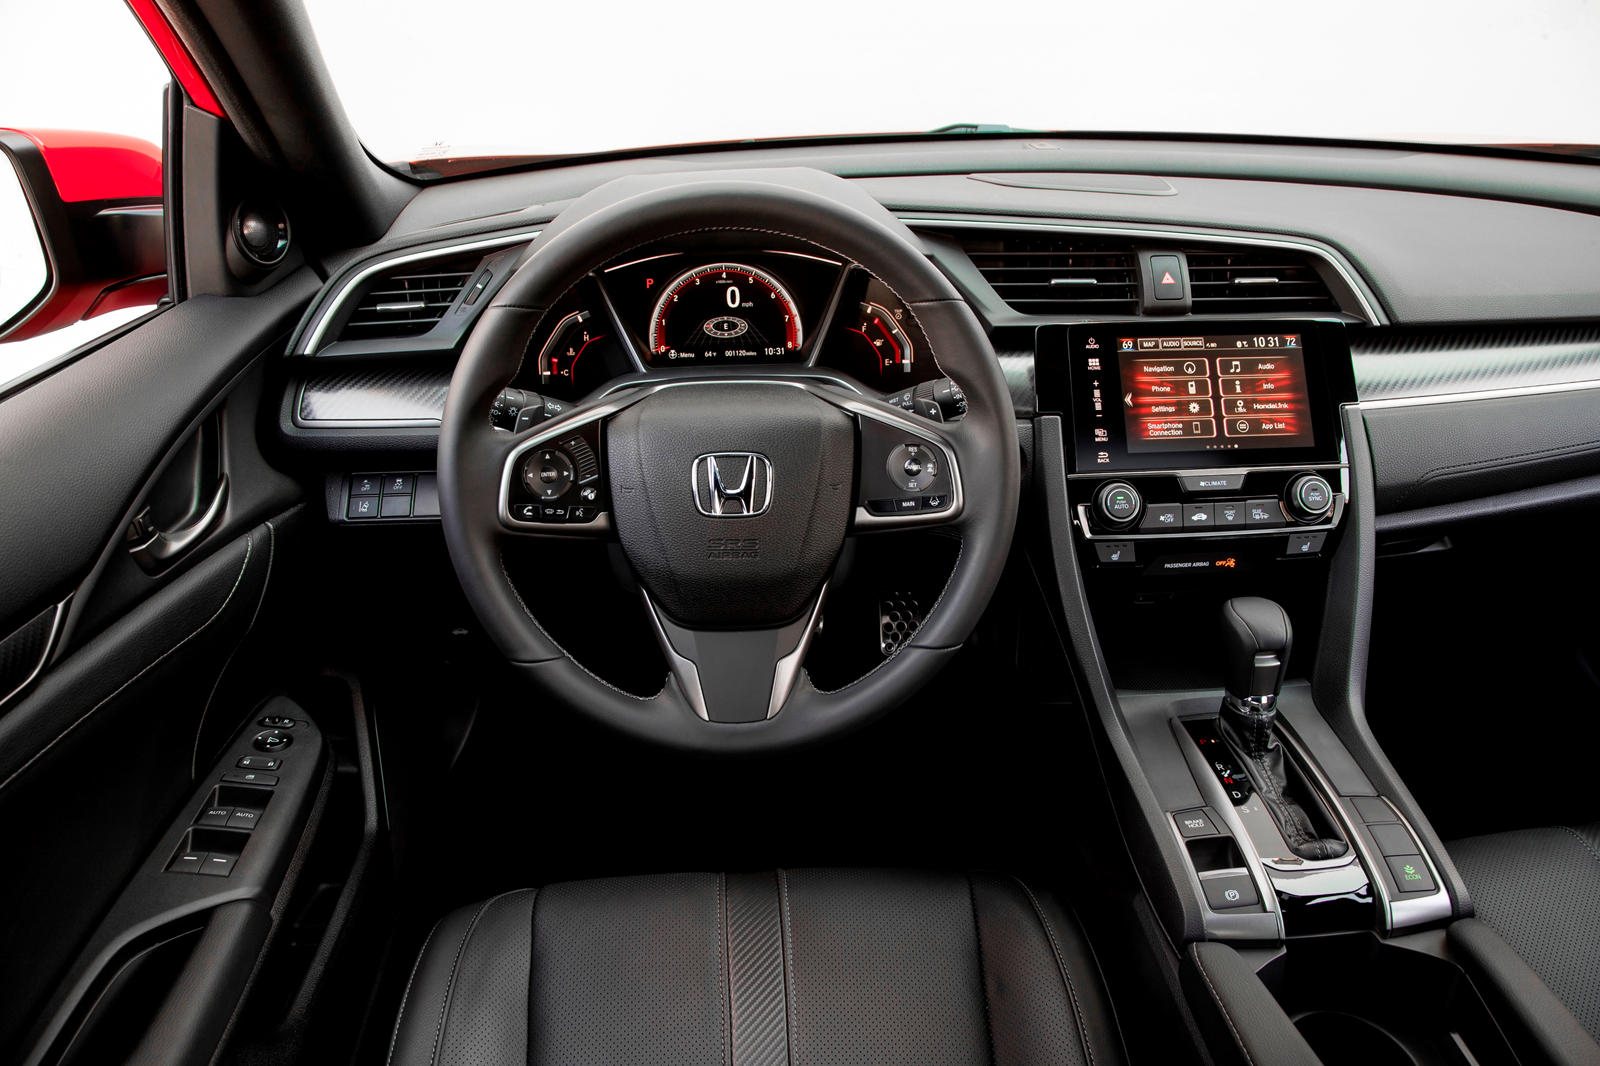 2020 Honda Civic Hatchback Interior staring